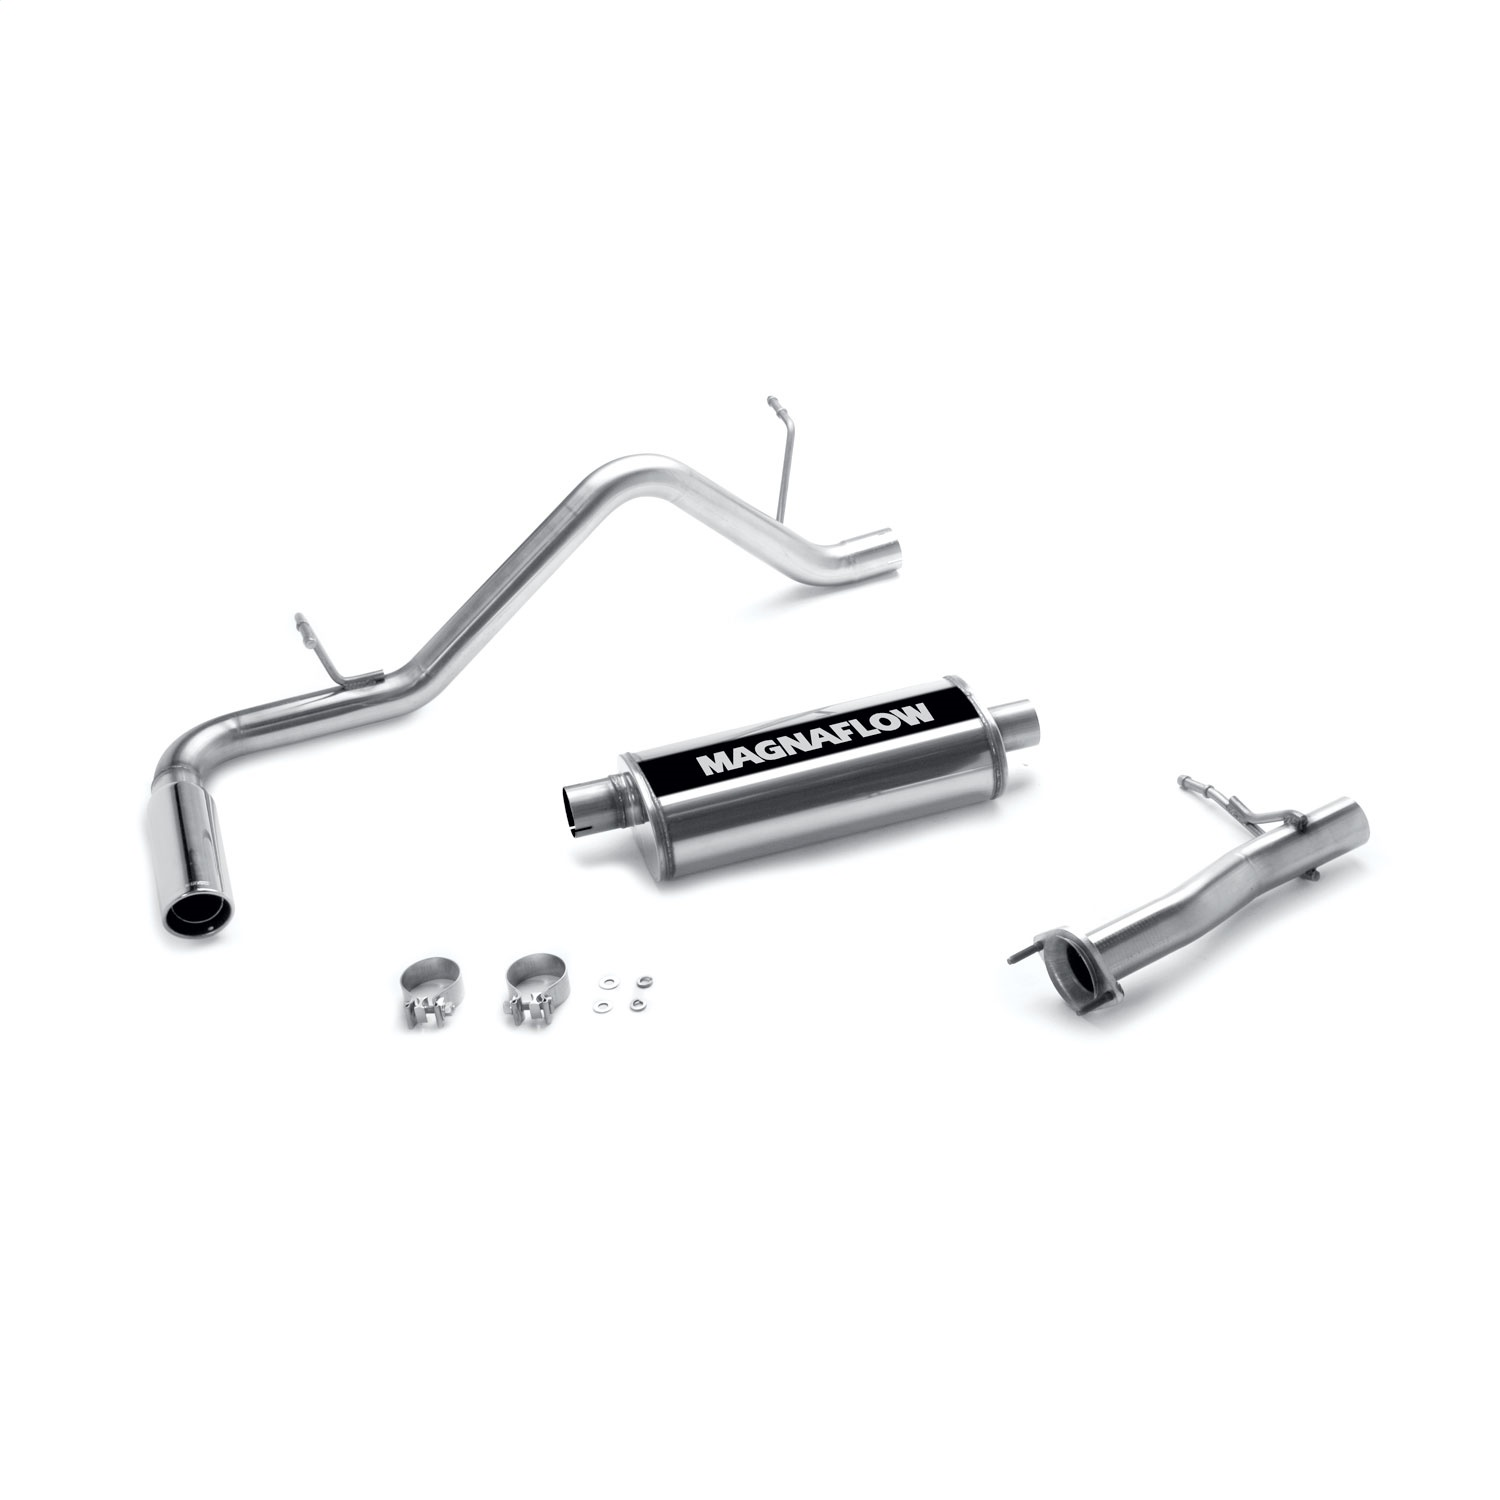 04 12 Chevrolet Colorado Magnaflow 3 Cat Back Exhaust